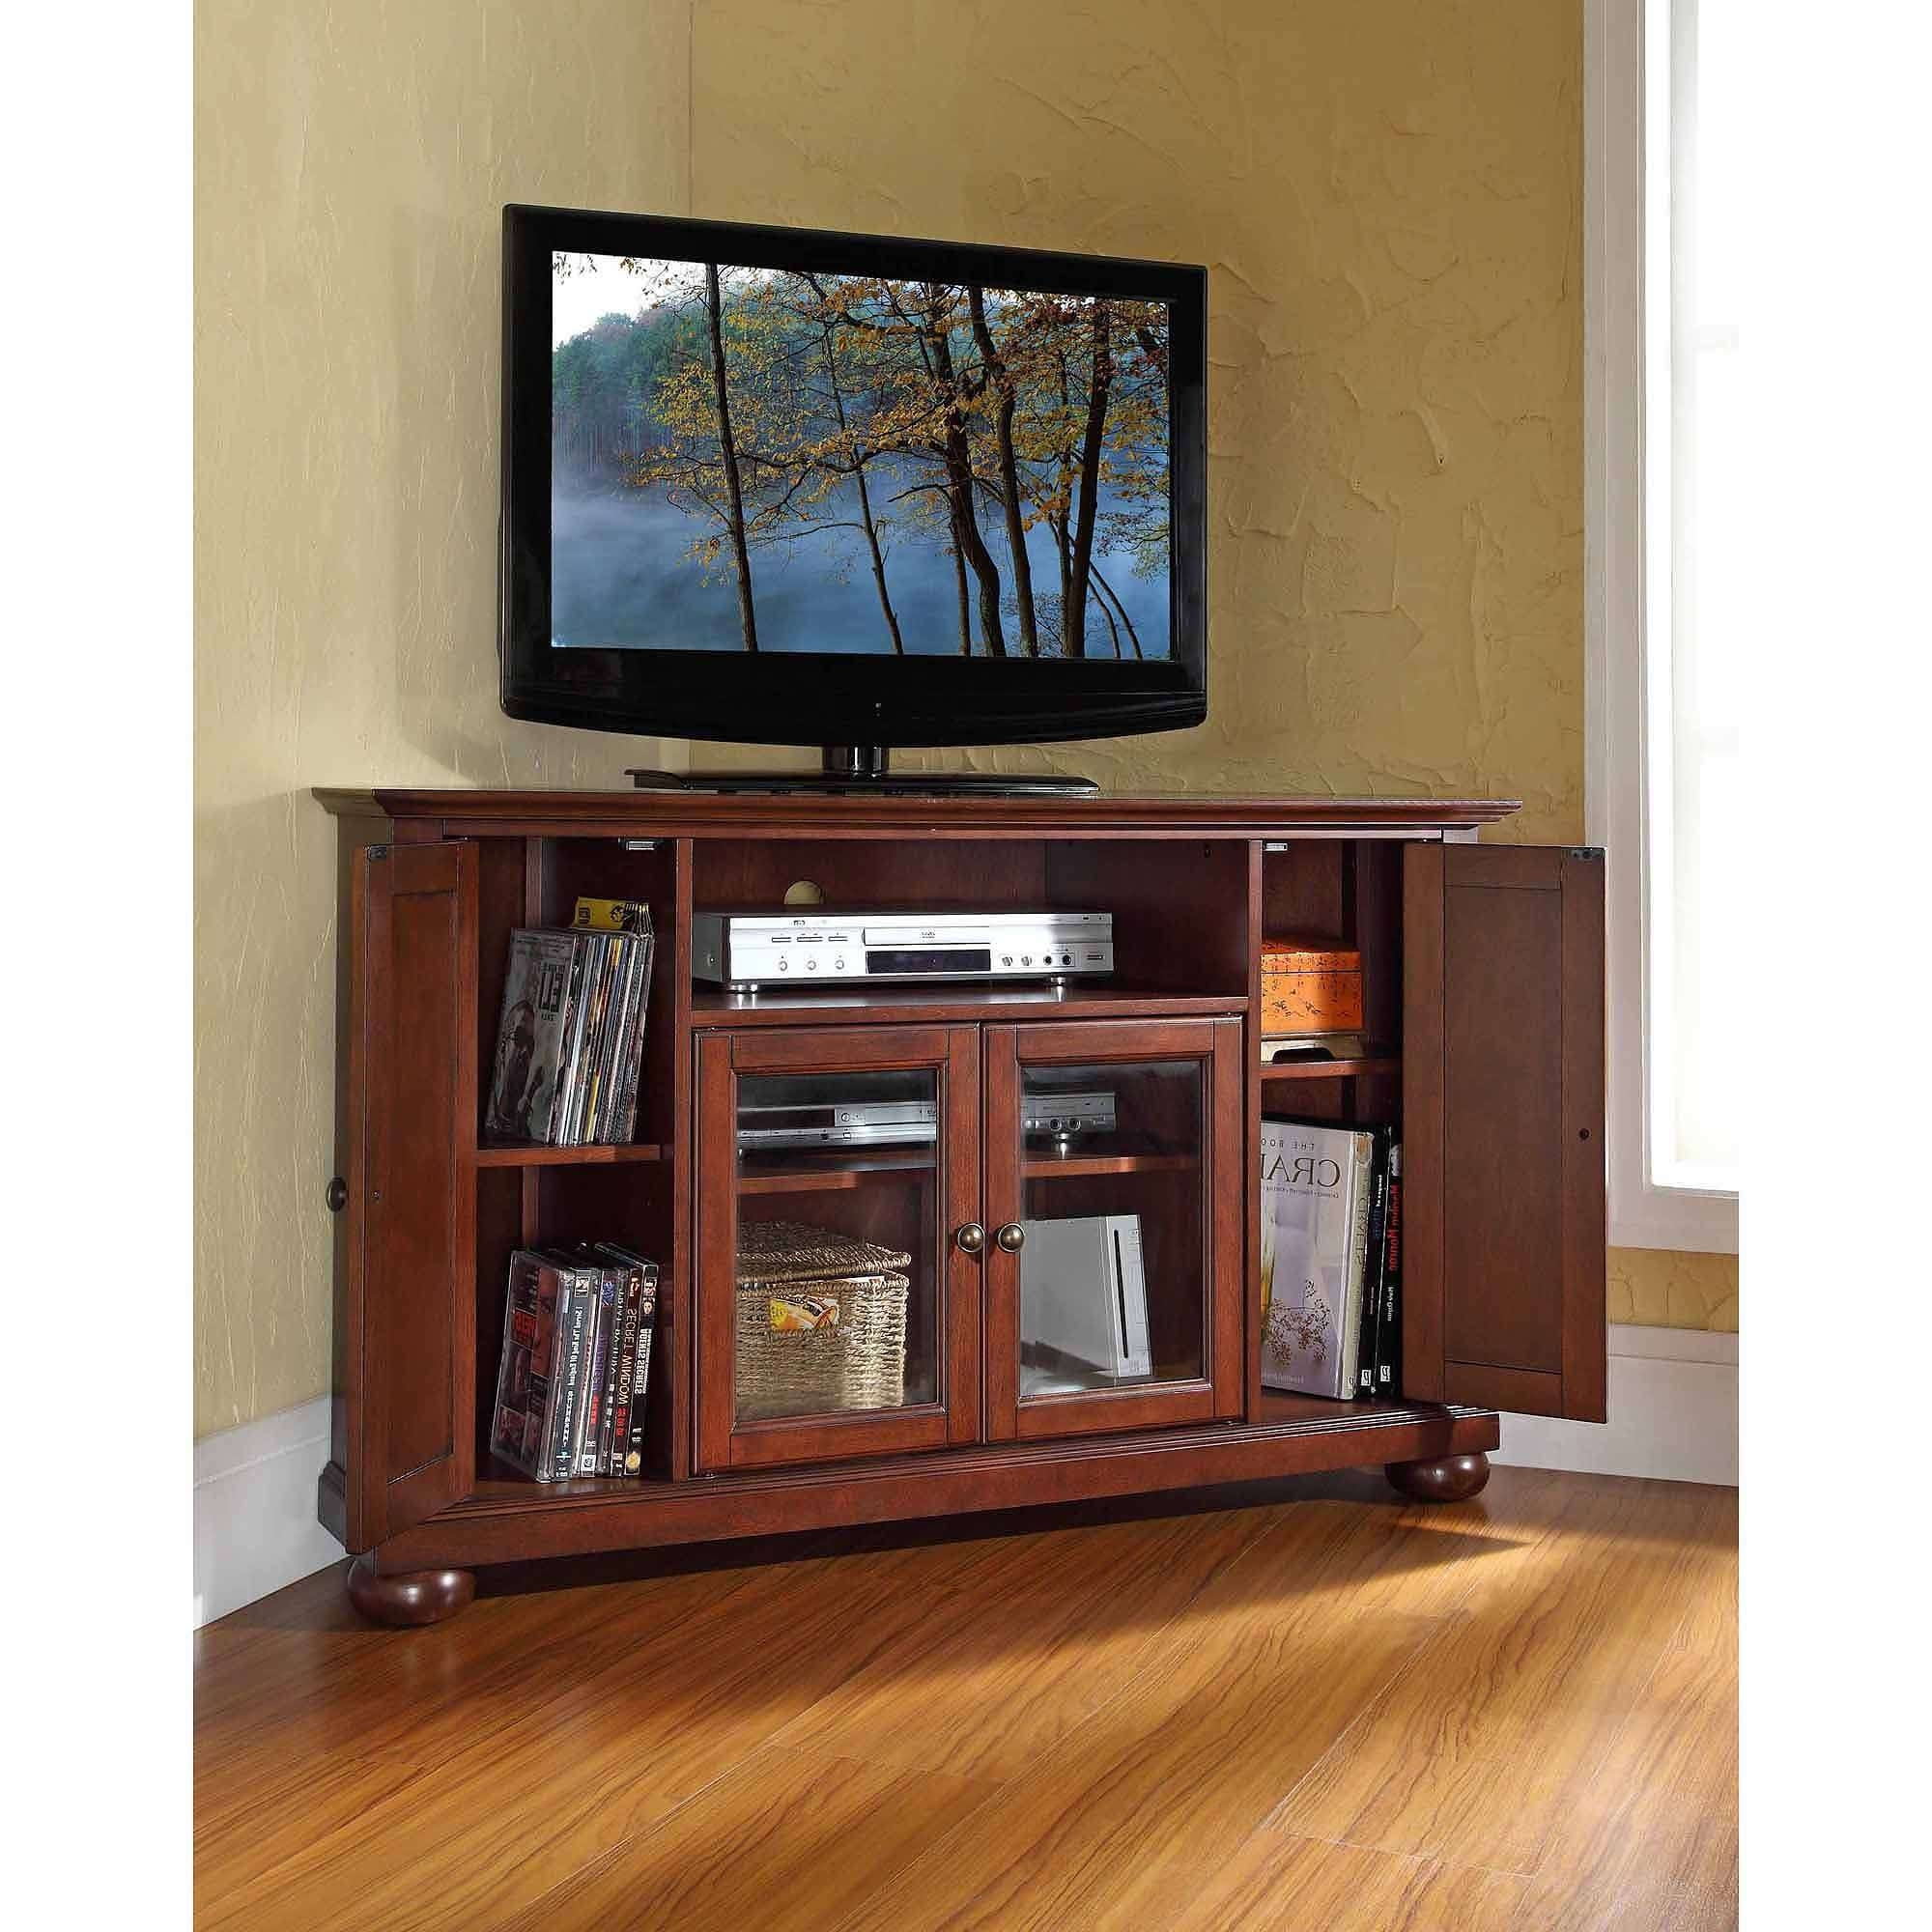 Tv Stand : 32 Unusual 55 Inch Corner Tv Stand With Mount Images Within 32 Inch Corner Tv Stands (View 6 of 15)